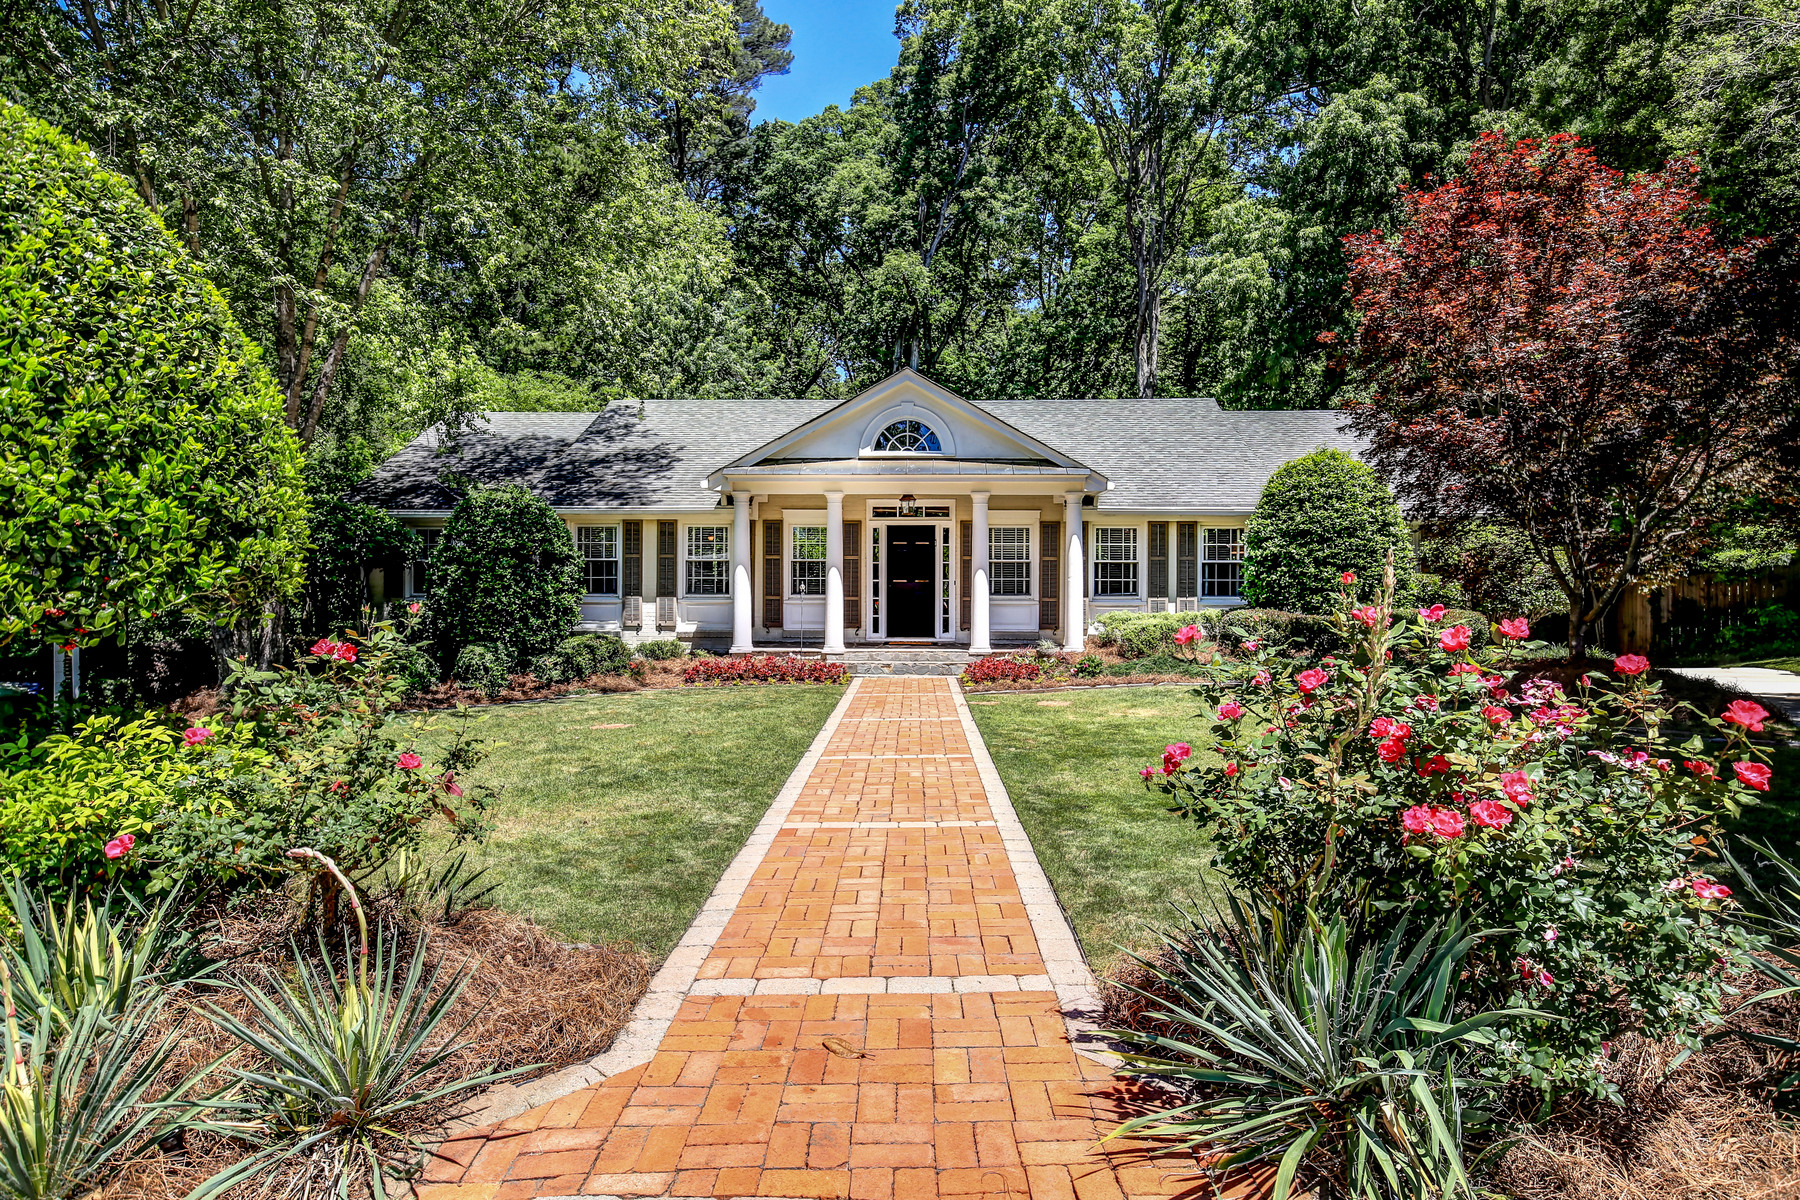 Single Family Home for Sale at A Wooded Surprise In Garden Hills 2548 Sharondale Court NE Atlanta, Georgia, 30305 United States